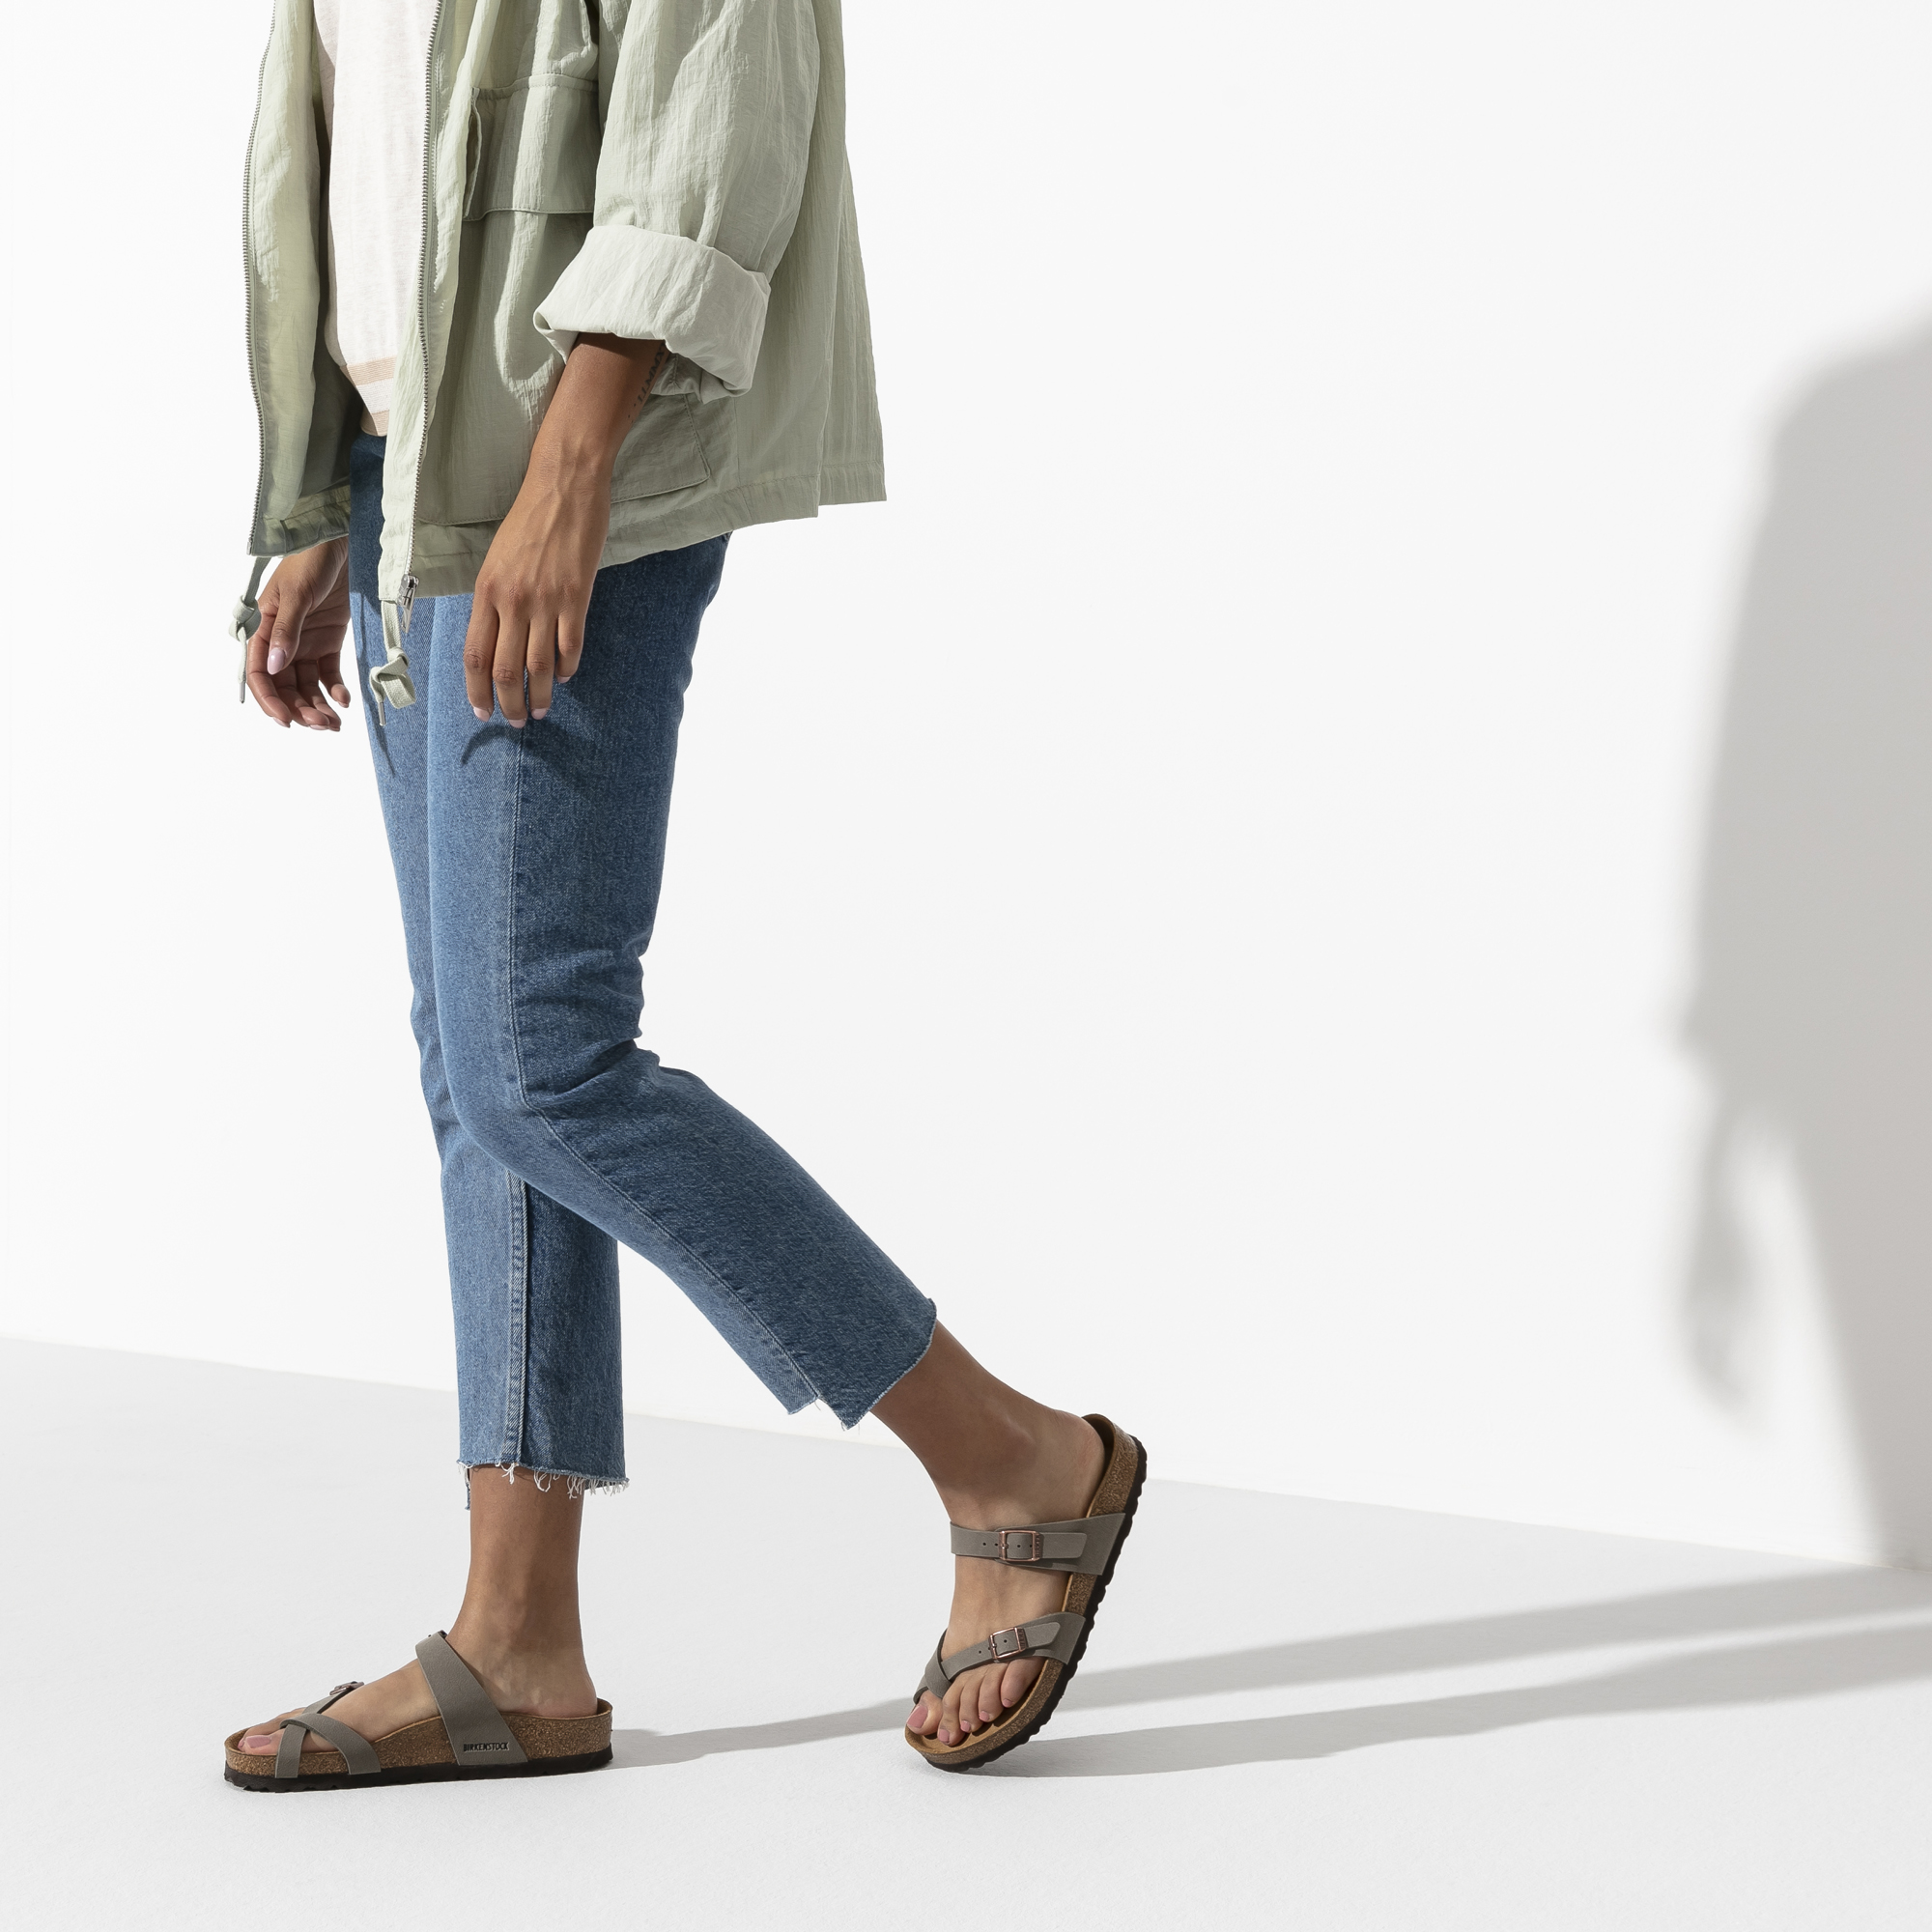 Shop our huge collection of Birkenstock sandals, shoes, clogs, and boots for women and men. Birkenstock experts since Free shipping & exchanges.